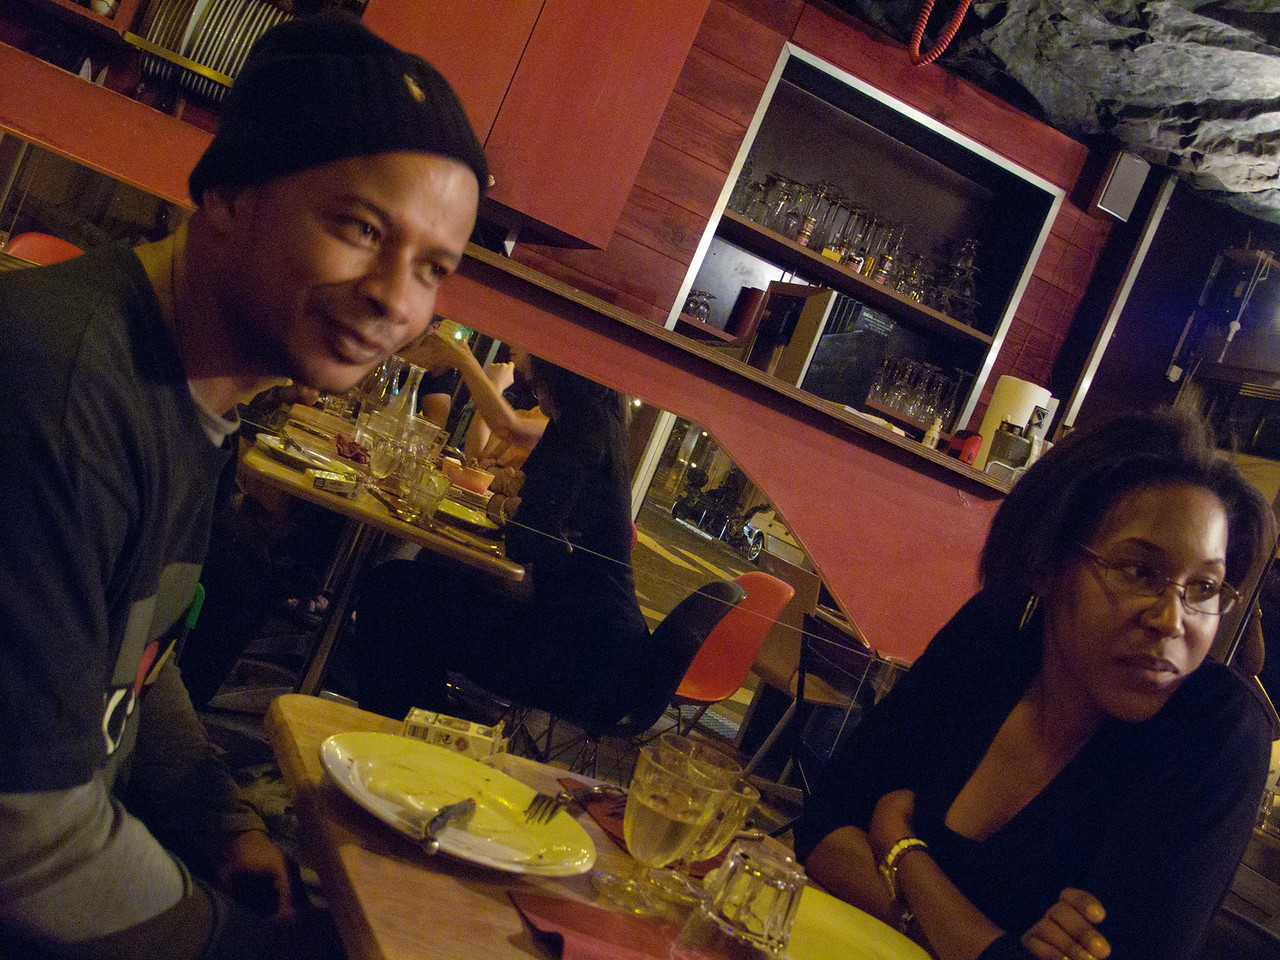 A delicious evening with new friends at Diet Ethique, rue de Chambery, Paris